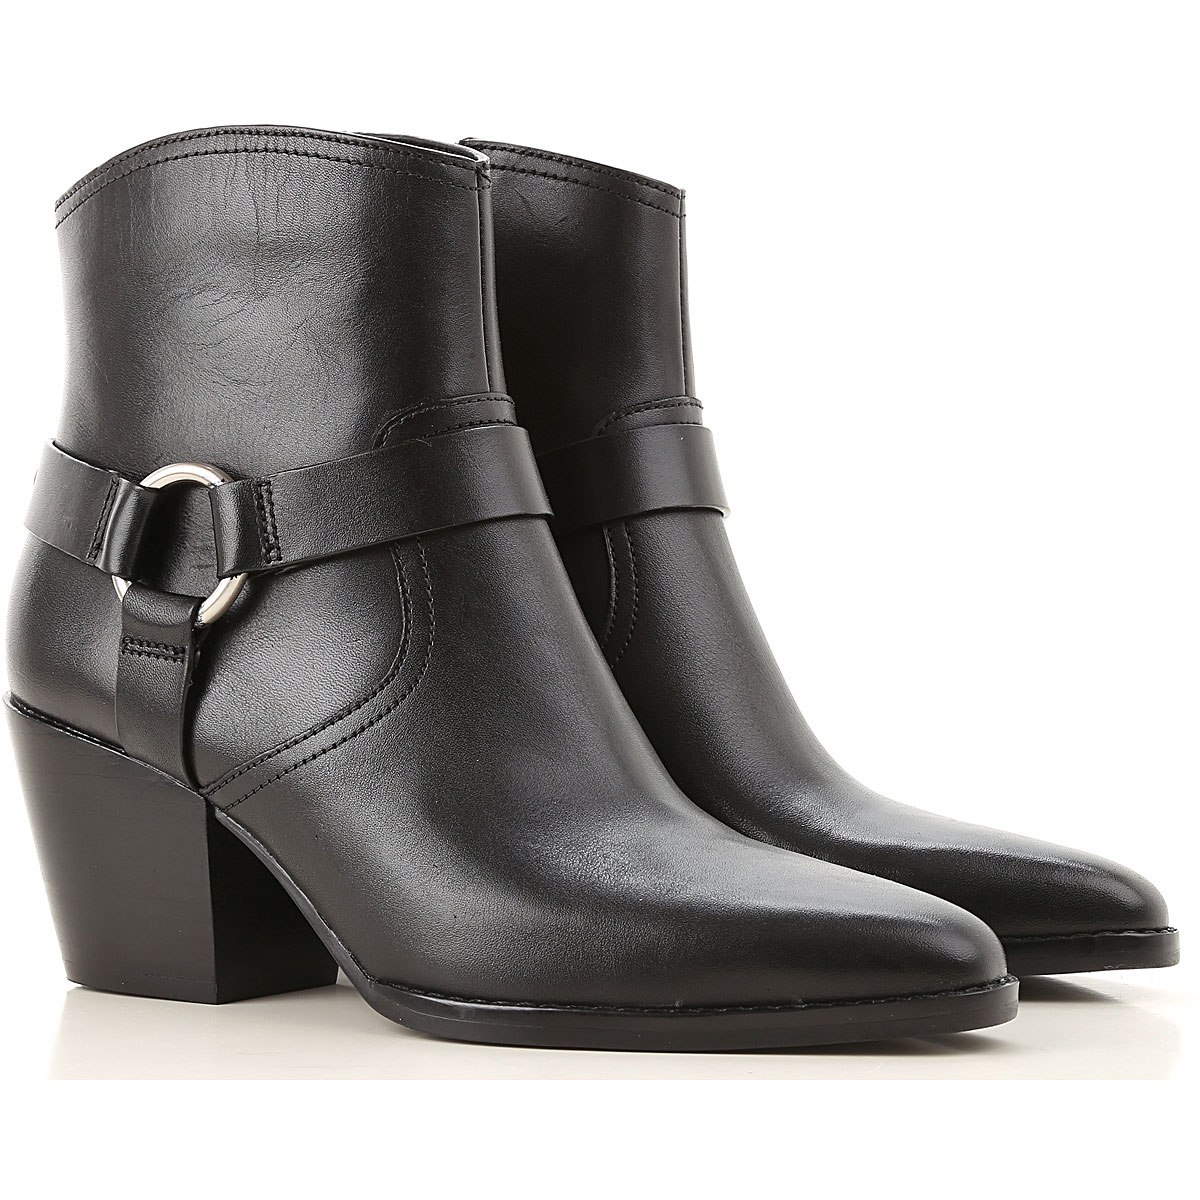 Michael Kors Boots for Women, Booties On Sale, Black, Leather, 2019, 10 5.5 6 6.5 7 8 9 9.5